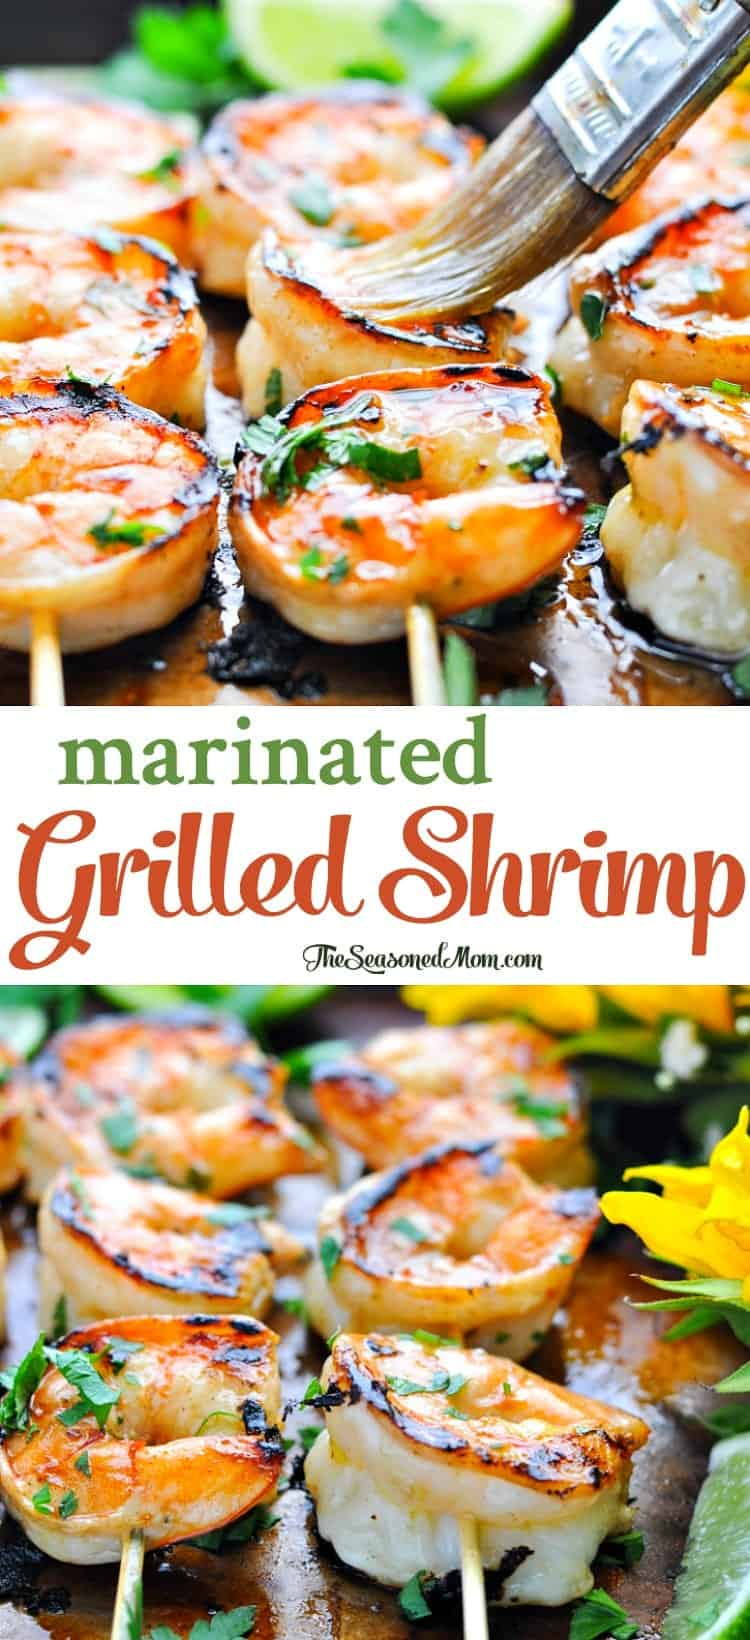 Marinated grilled shrimp and your feel good foods the seasoned mom marinated grilled shrimp easy dinner recipes healthy dinner recipes dinner ideas shrimp forumfinder Gallery